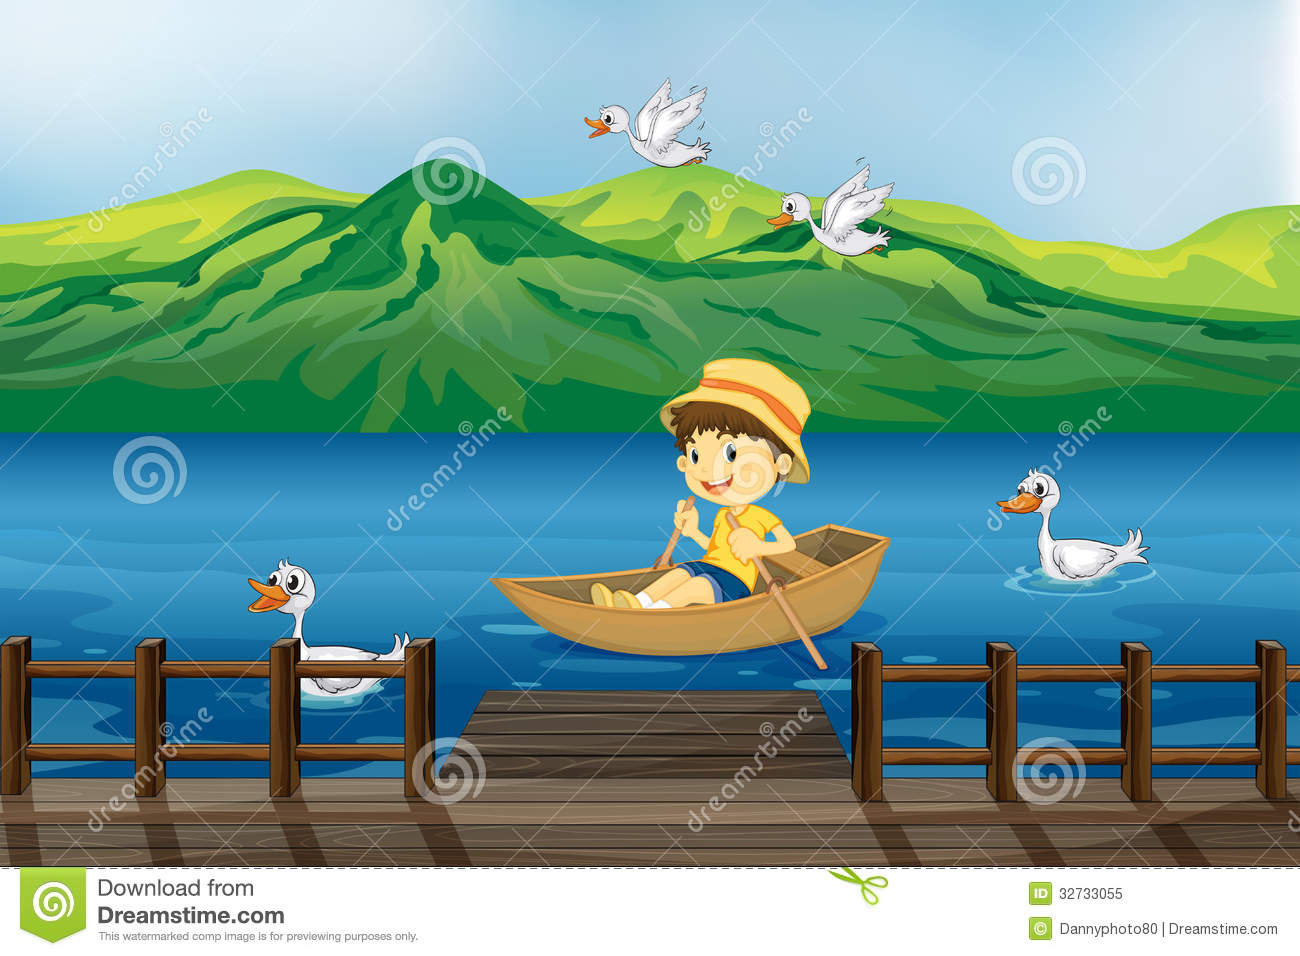 A Boy Riding On A Wooden Boat Stock Vector - Illustration of drawing, child: 32733055